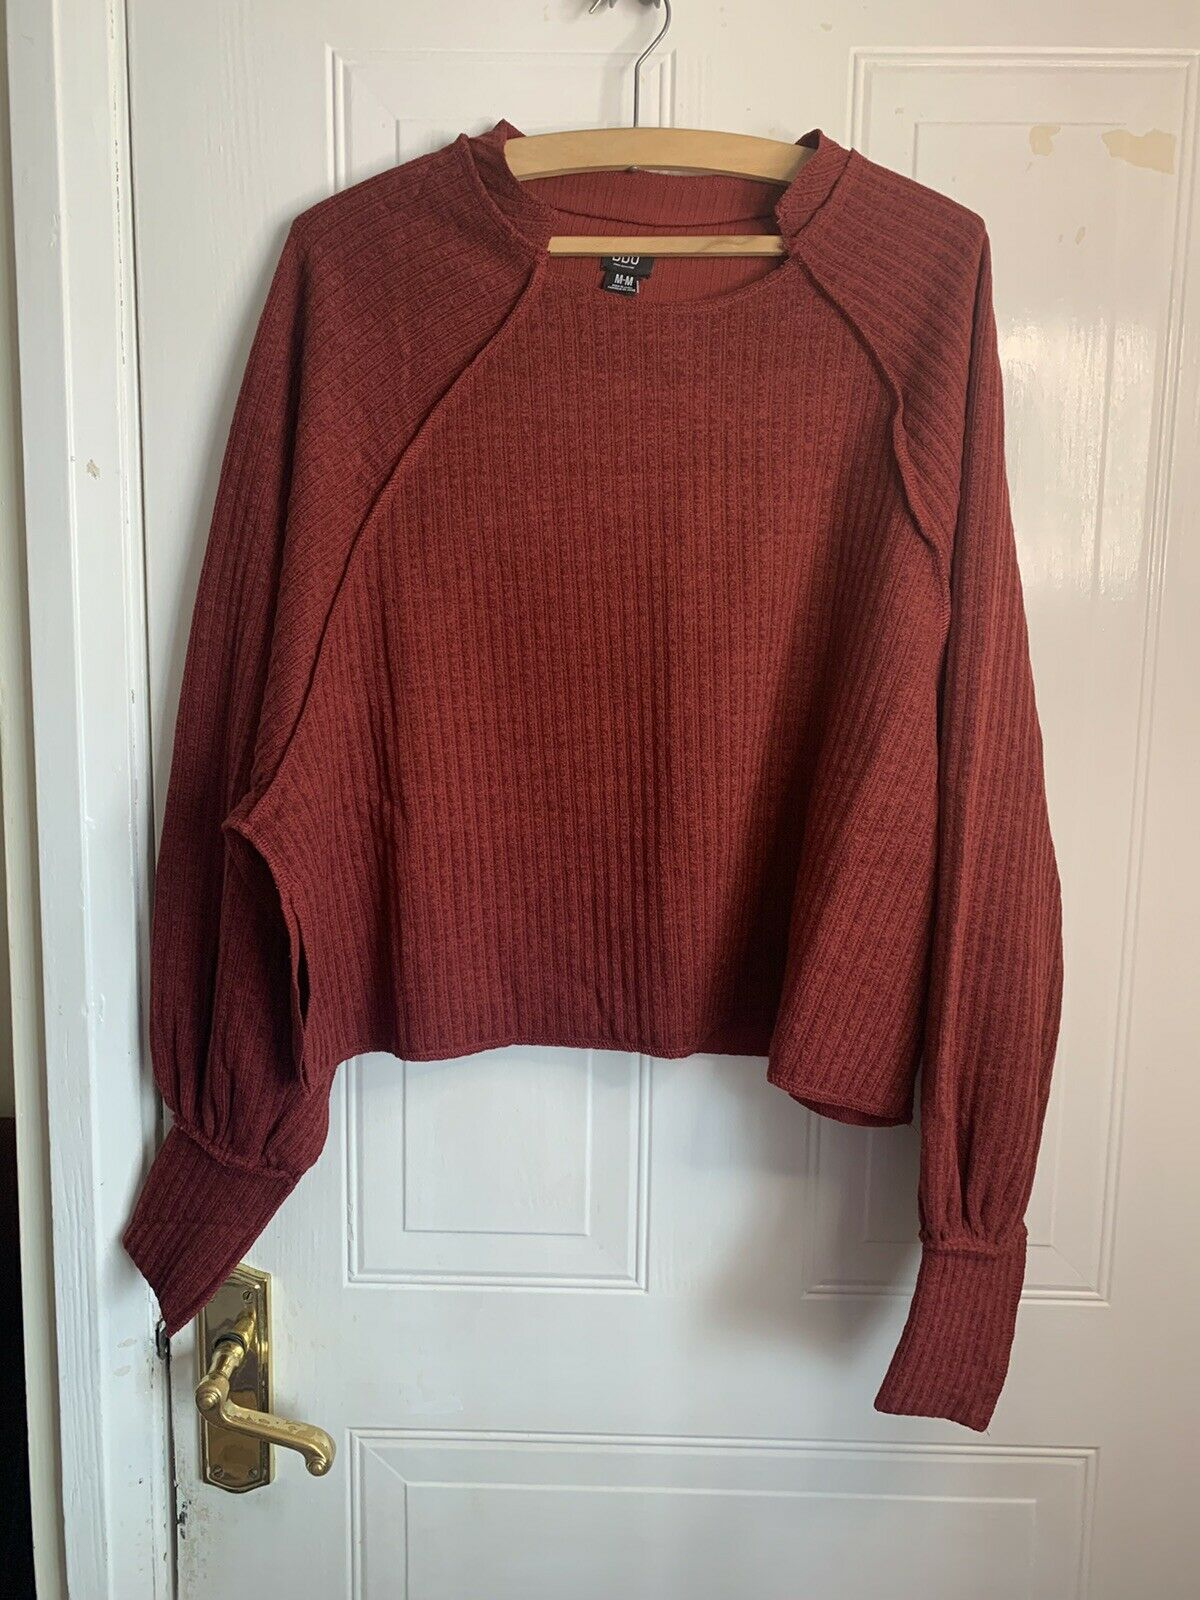 Urban Outfitters BDG Grayson Cut Crew Neck Crop Jumper Wine/red Size M RP